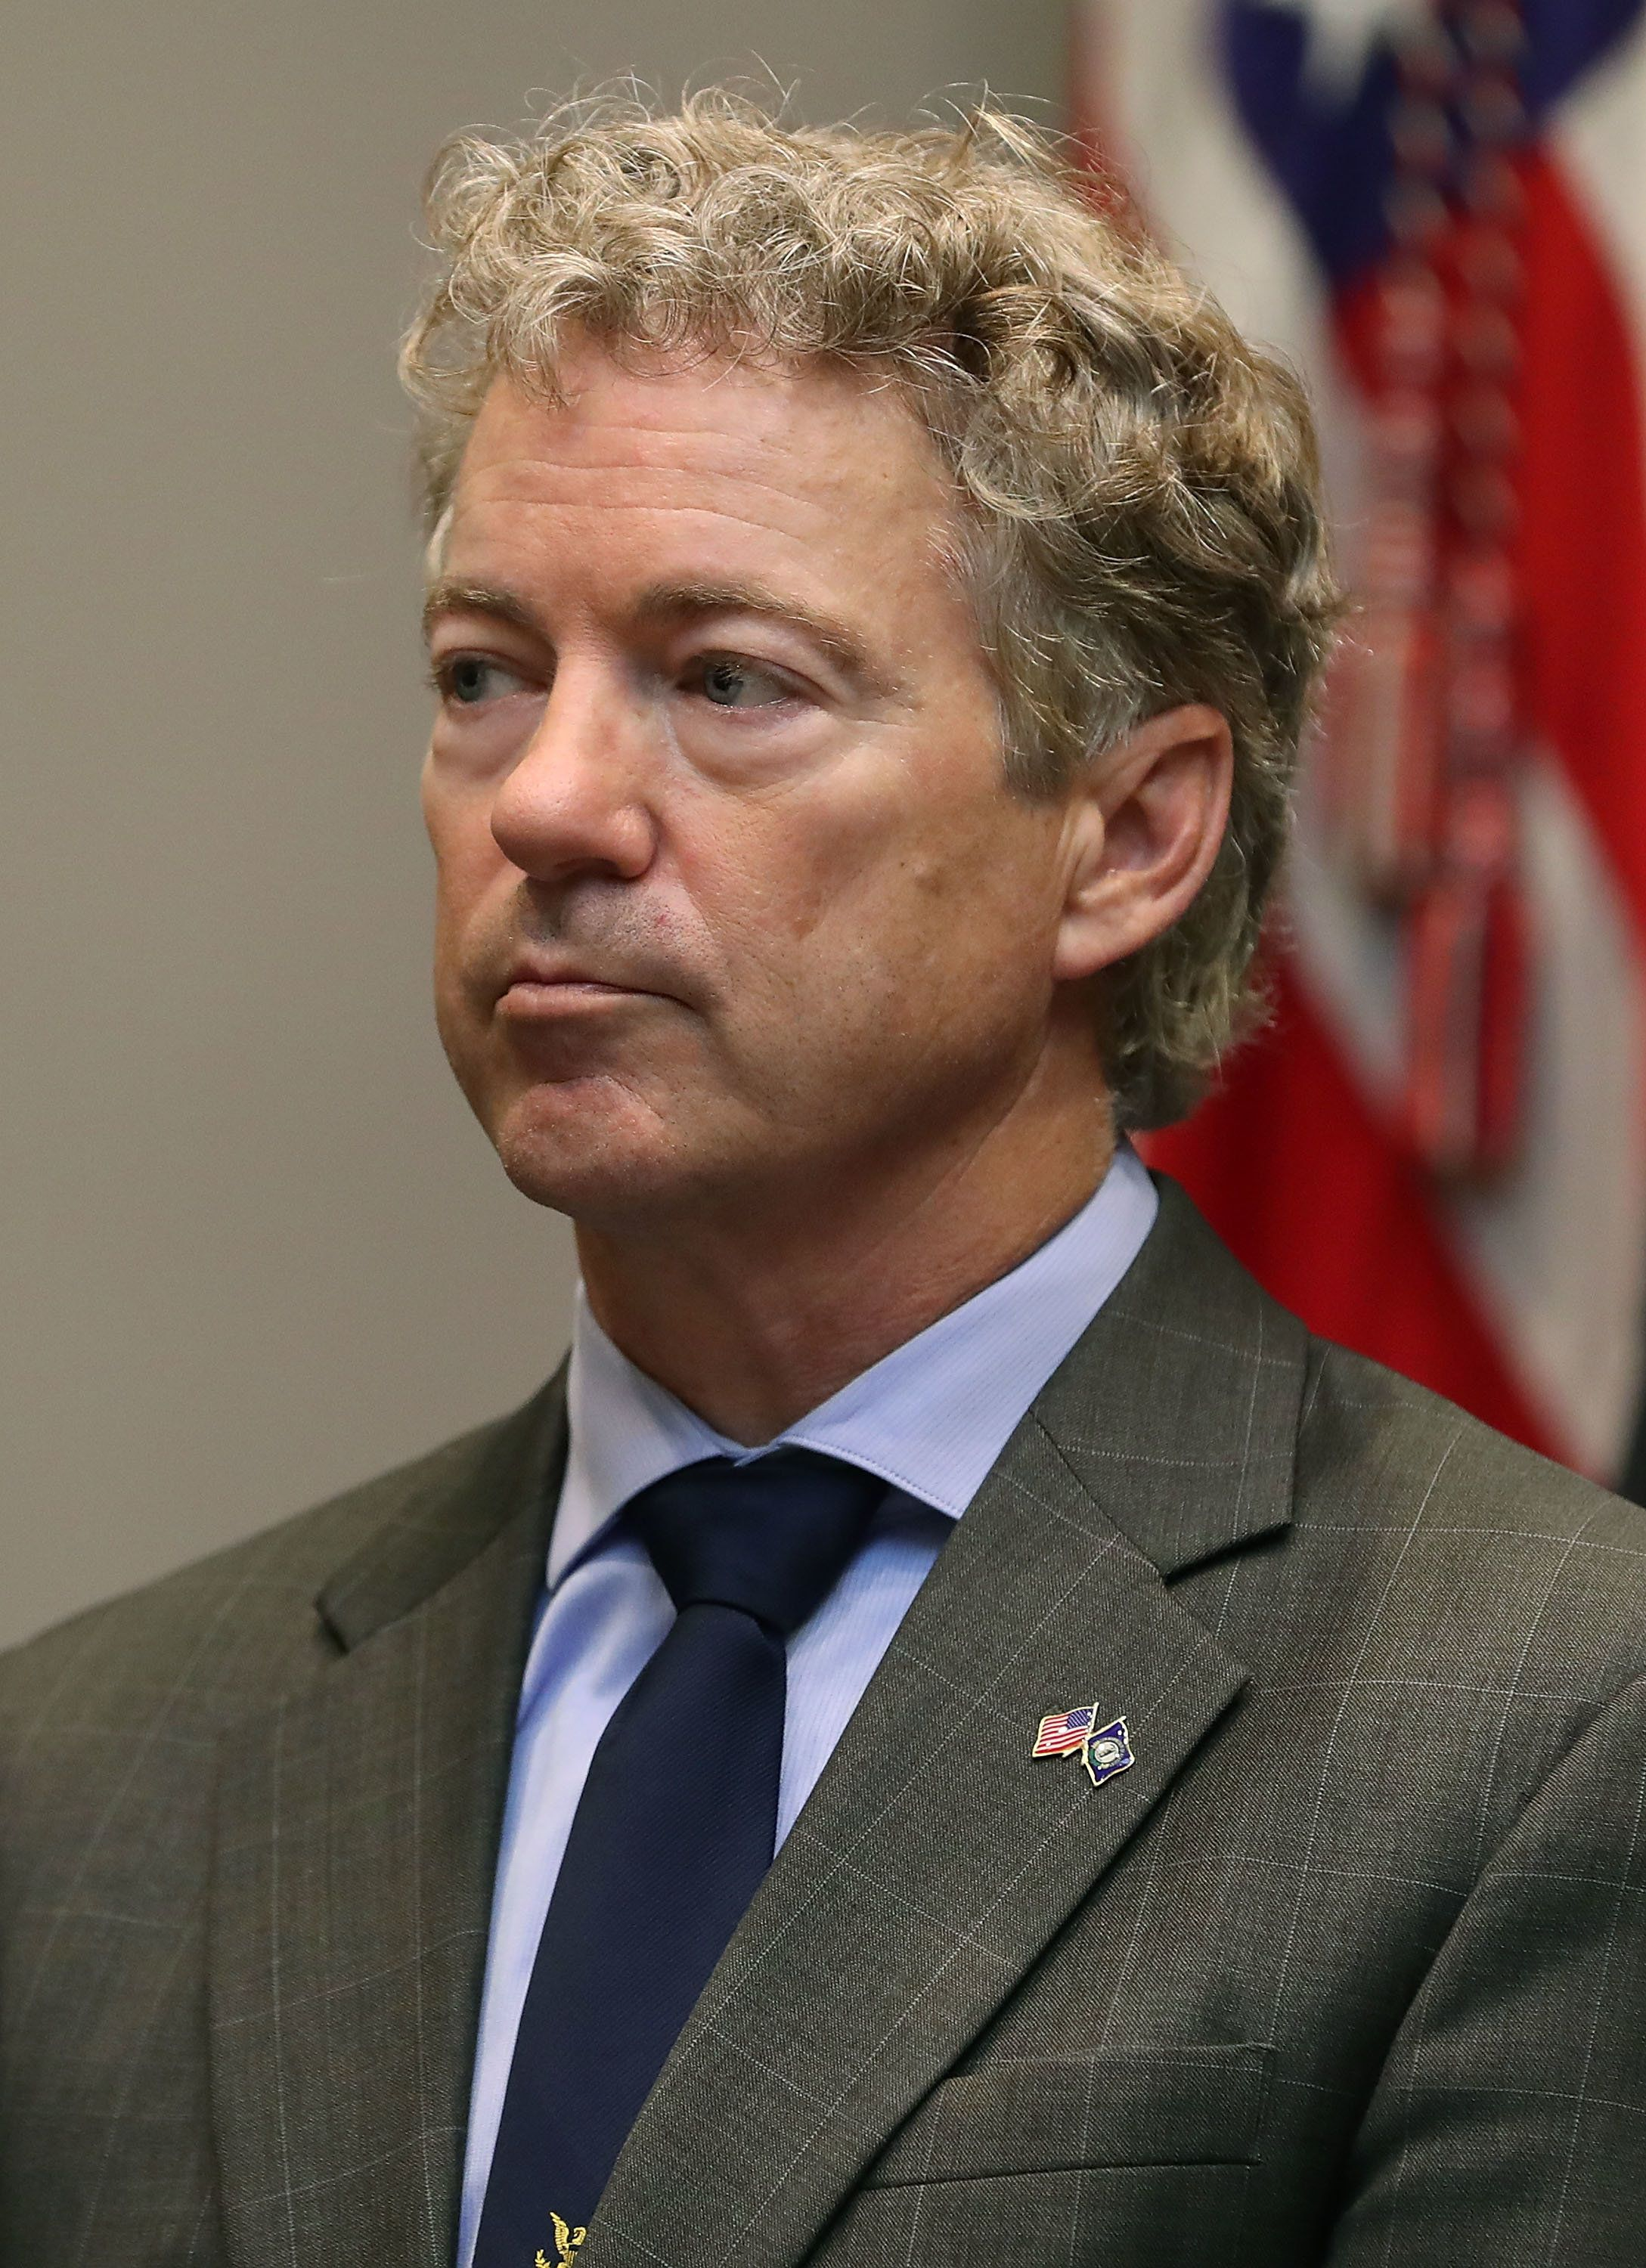 WASHINGTON, DC - NOVEMBER 14: Sen. Rand Paul (R-KY) listens to U.S. President Donald Trump make an announcement on the 'First Step Act', prison reform bill, in the Roosevelt Room at the White House on November 14, 2018 in Washington, DC.  (Photo by Mark Wilson/Getty Images)